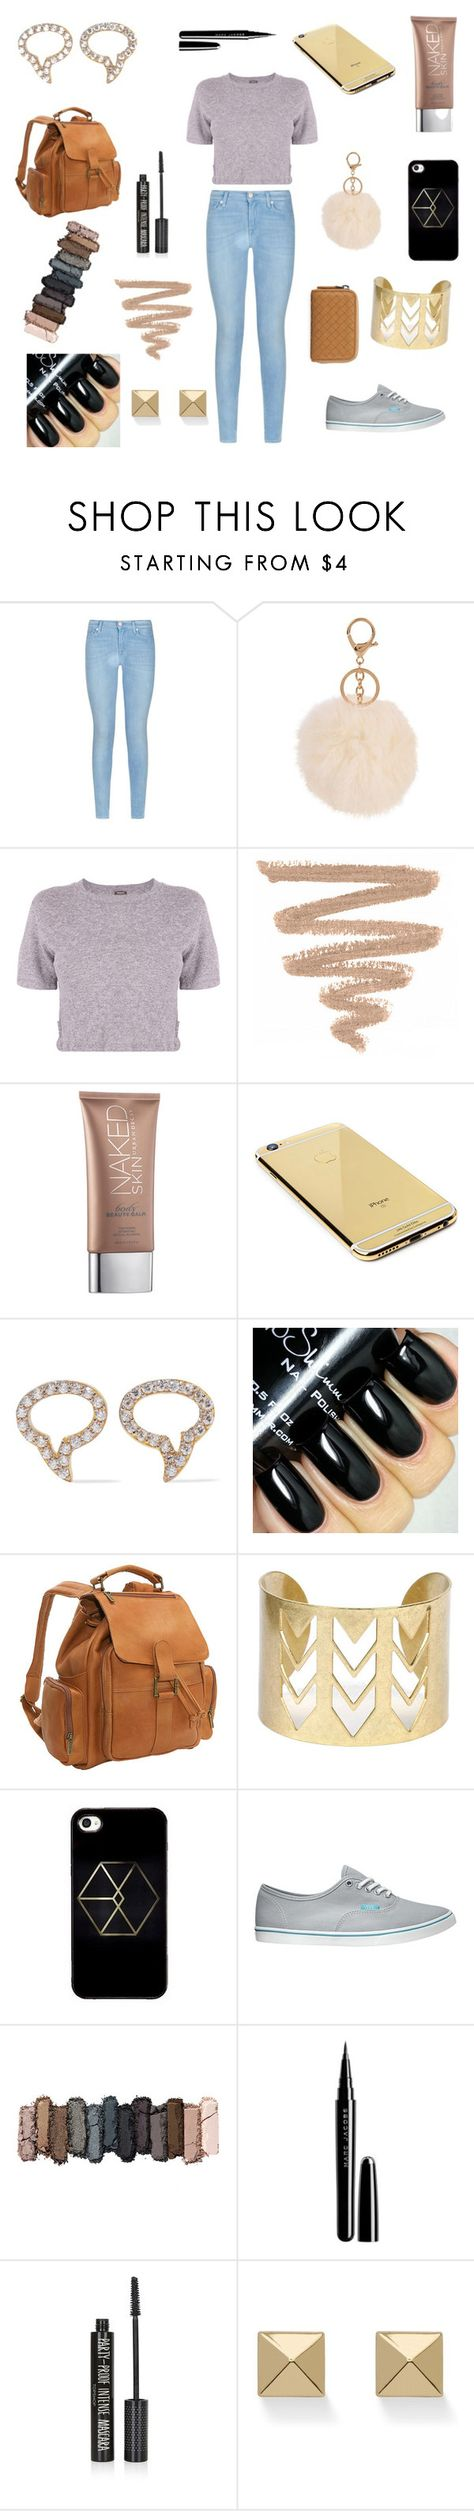 """Me Time"" by lauren-clxx ❤ liked on Polyvore featuring 7 For All Mankind, Monrow, Urban Decay, Goldgenie, Aamaya by priyanka, Le Donne, Vans, Marc Jacobs, Topshop and Palm Beach Jewelry"